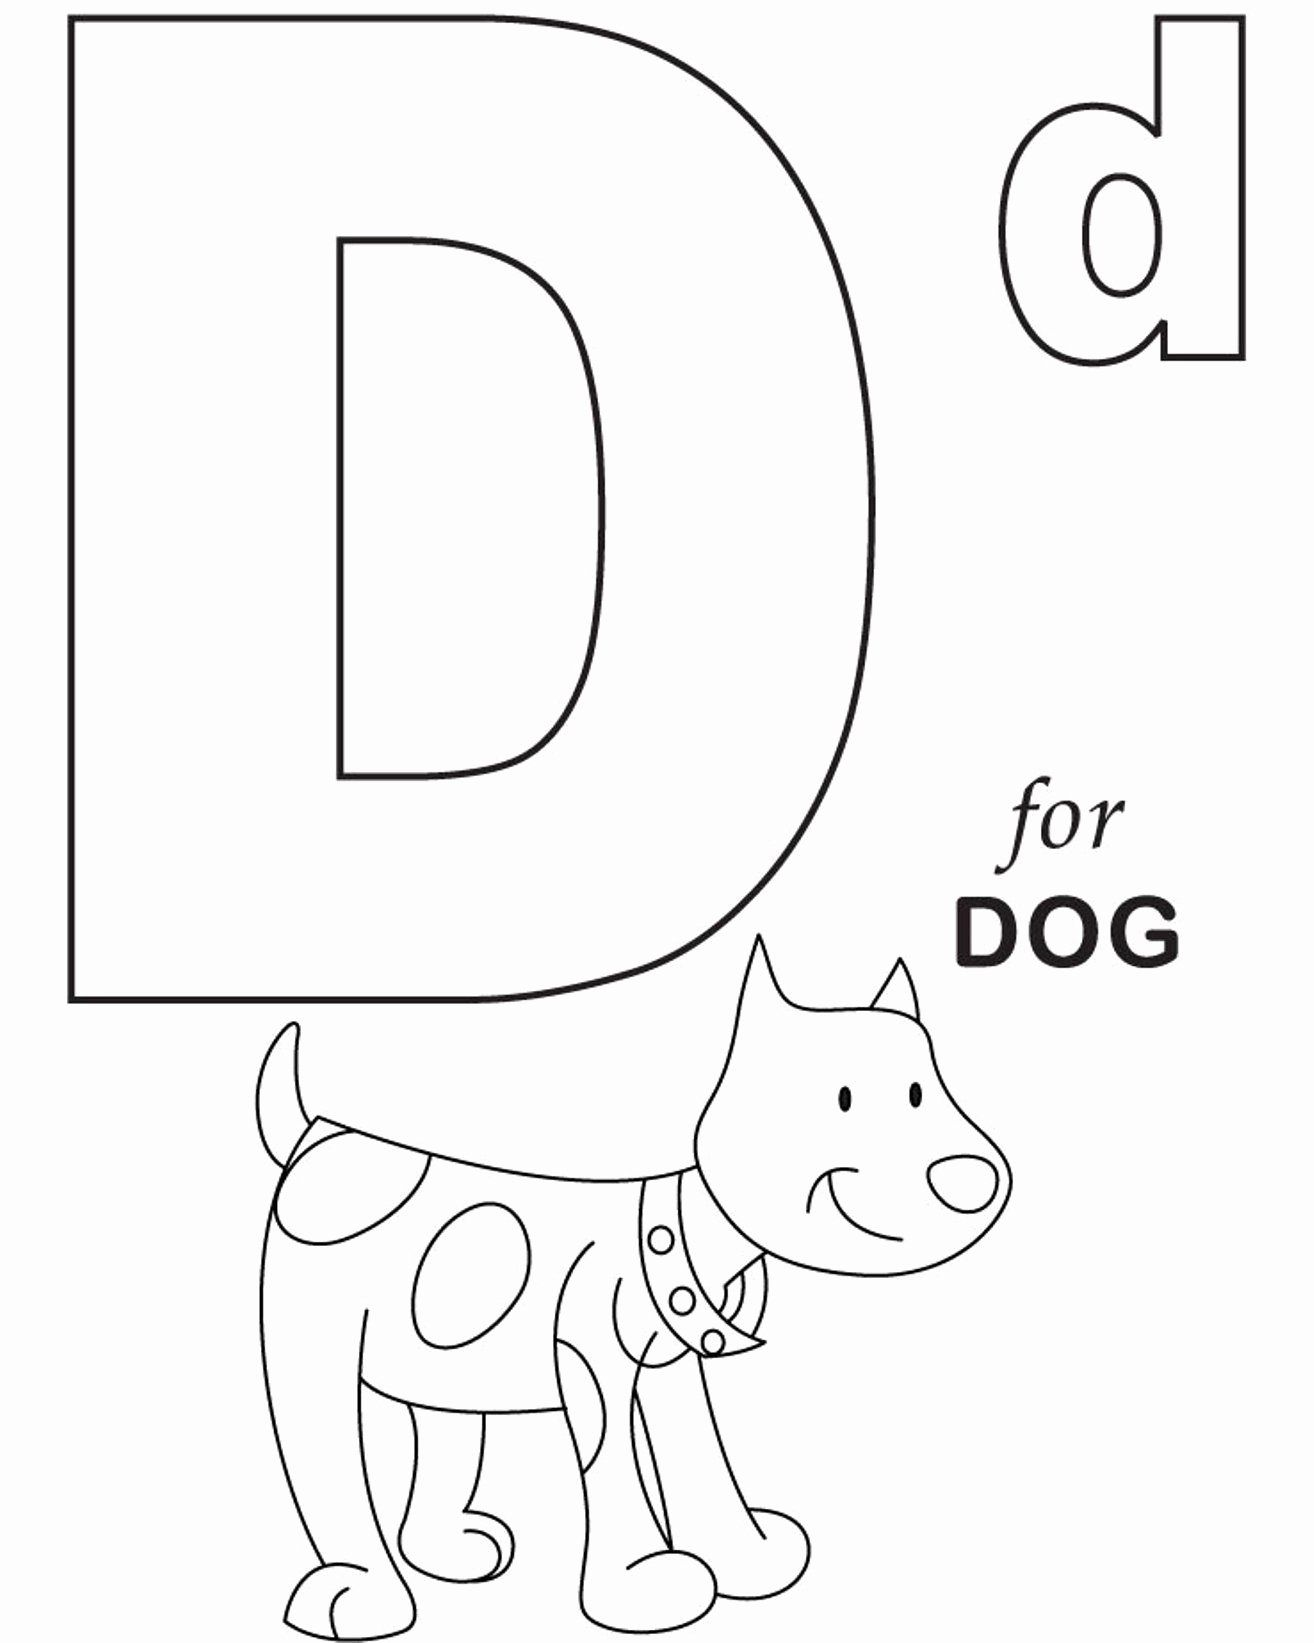 Alphabet Coloring Book Printable Awesome Coloring Pages Coloring Alphabet For Dog Printable Letter In 2020 Abc Coloring Pages Abc Coloring Alphabet Coloring Pages